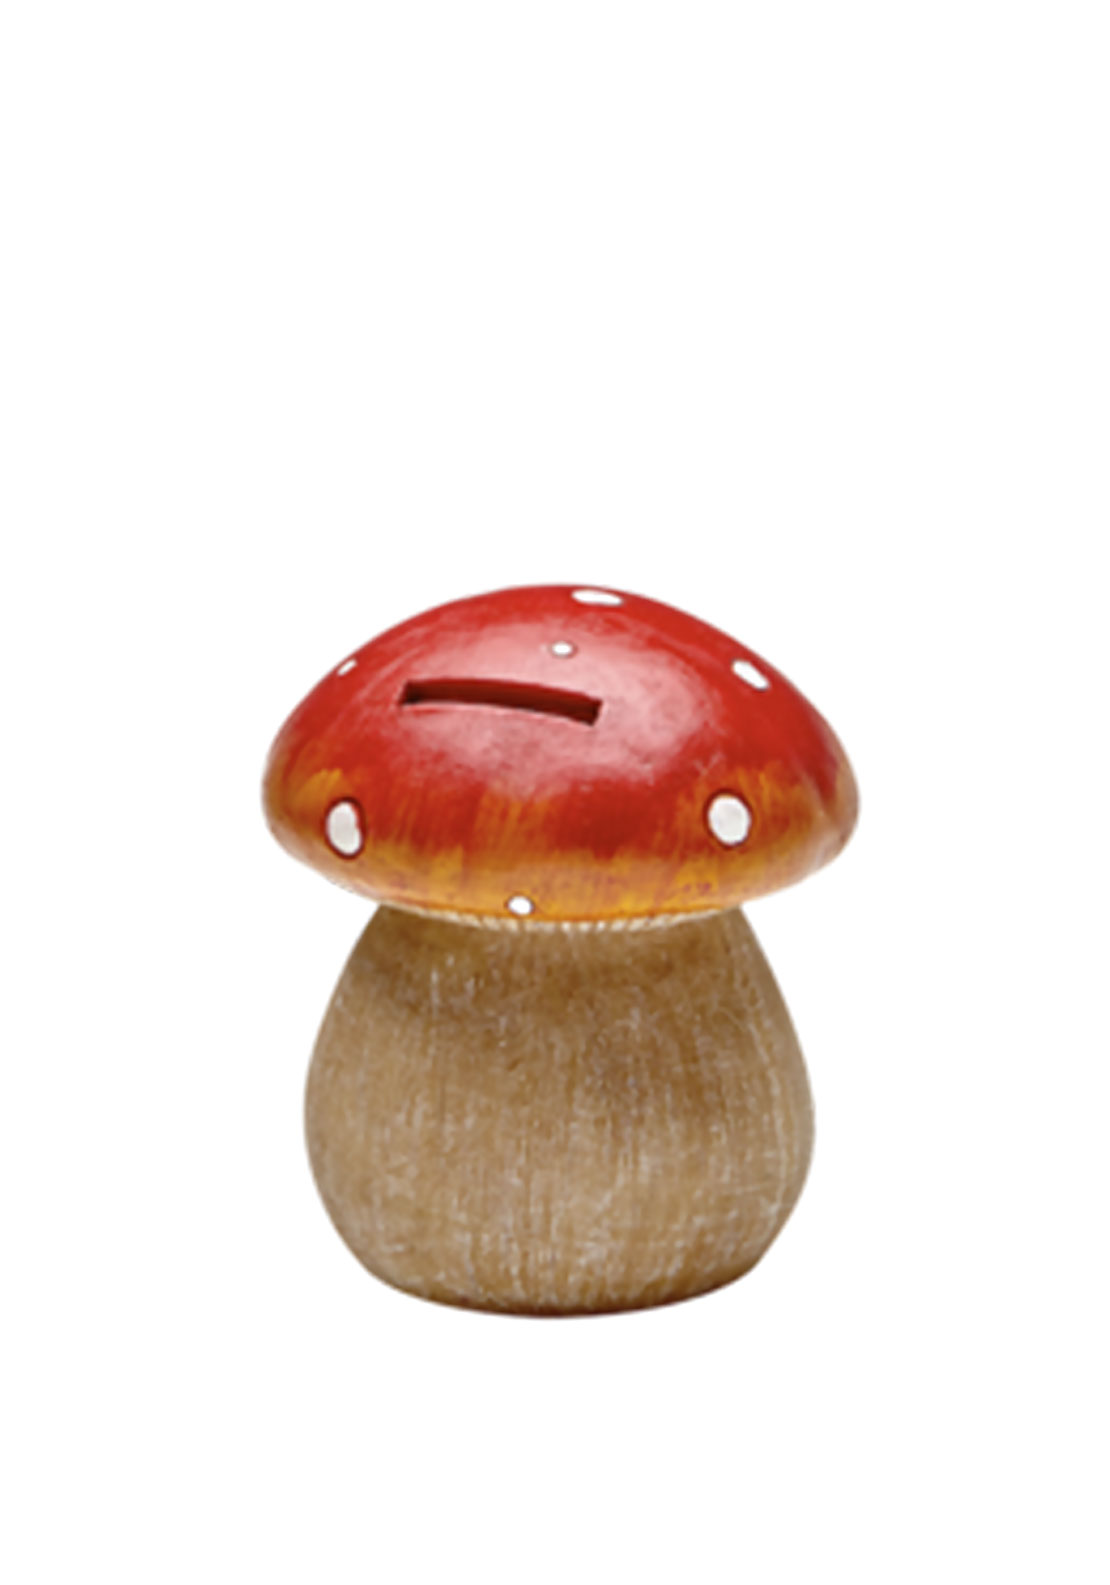 The irish fairy door company fairy toadstool money bank for The irish fairy door company facebook